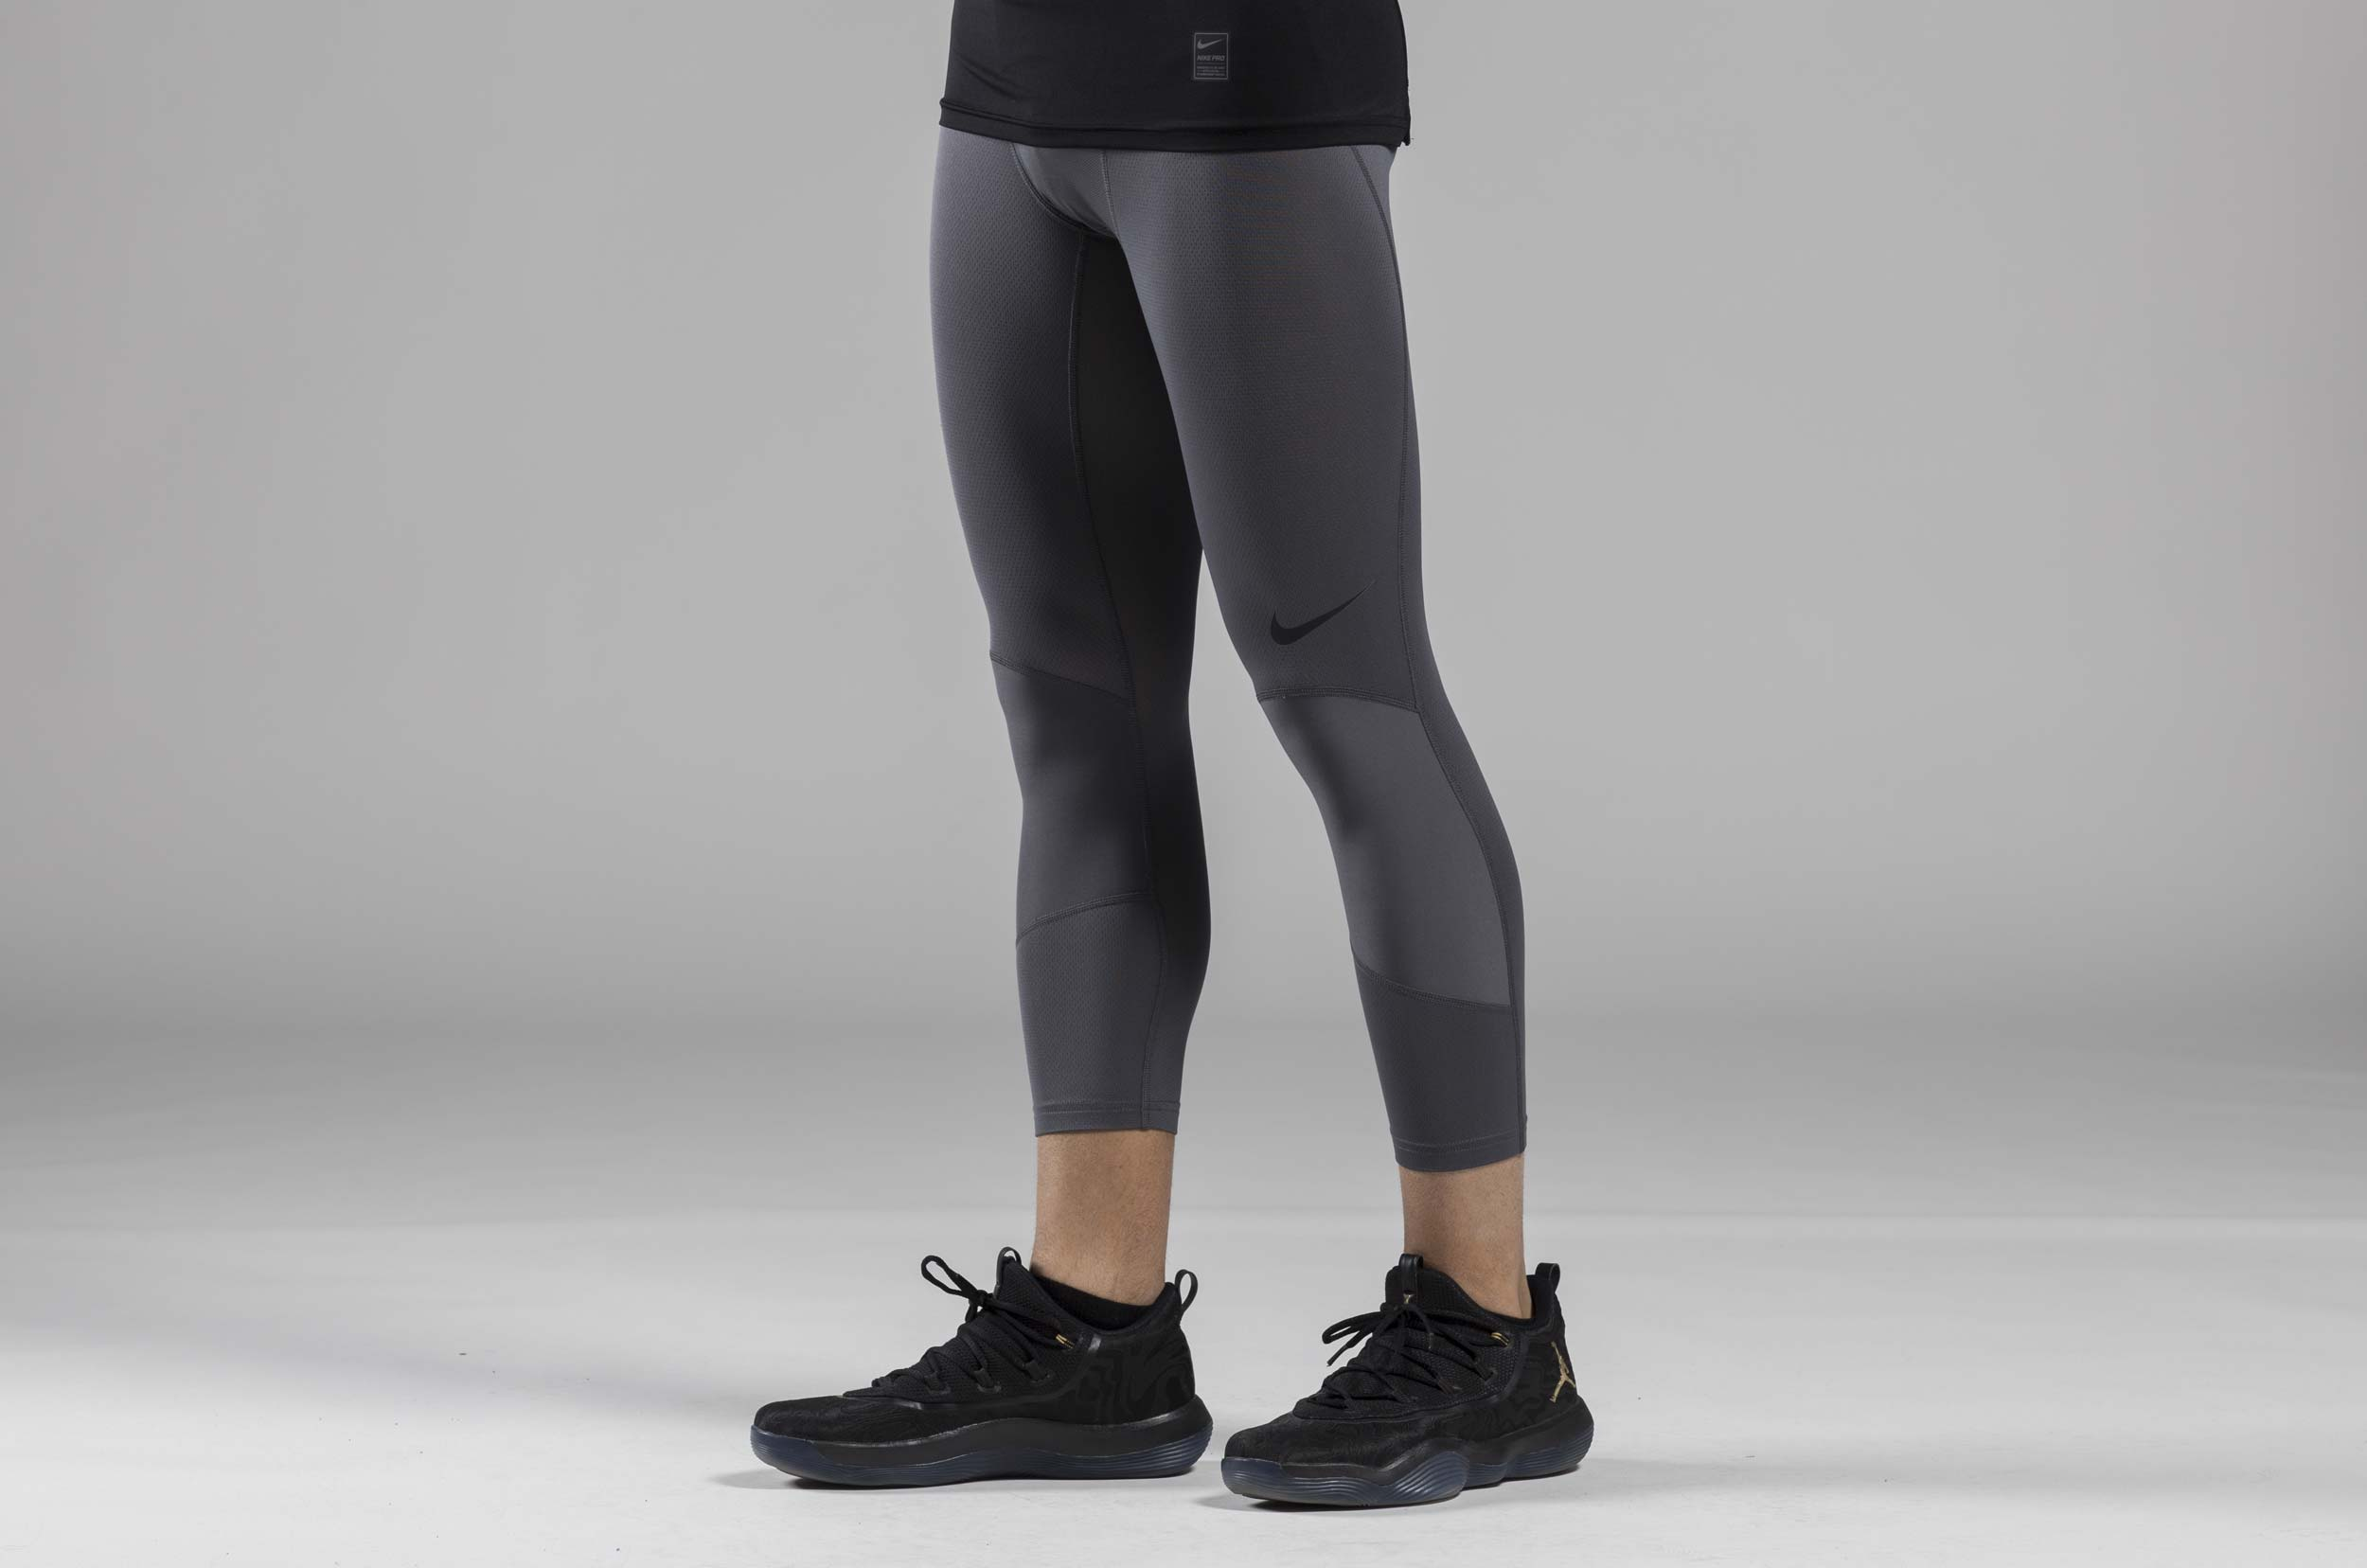 NIKE M NP DRY TIGHT 3QY BBALL 925821-021 Ανθρακί